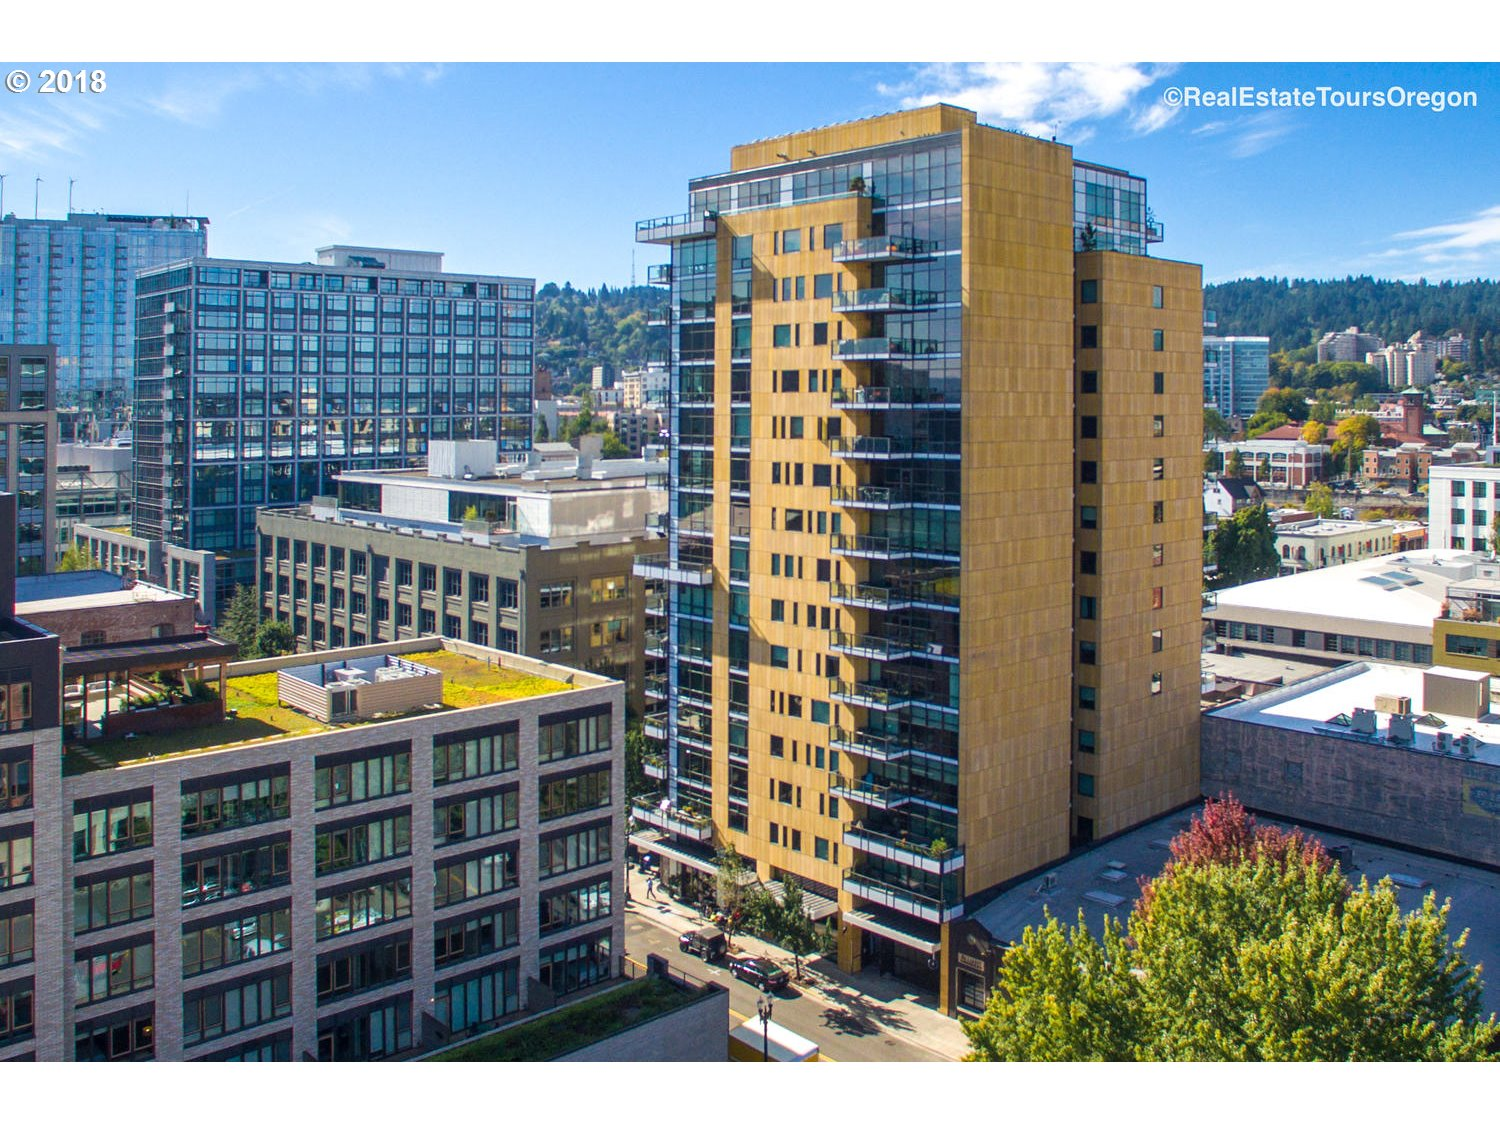 Property for sale at 311 NW 12Th AVE # 302, Portland,  Oregon 97209